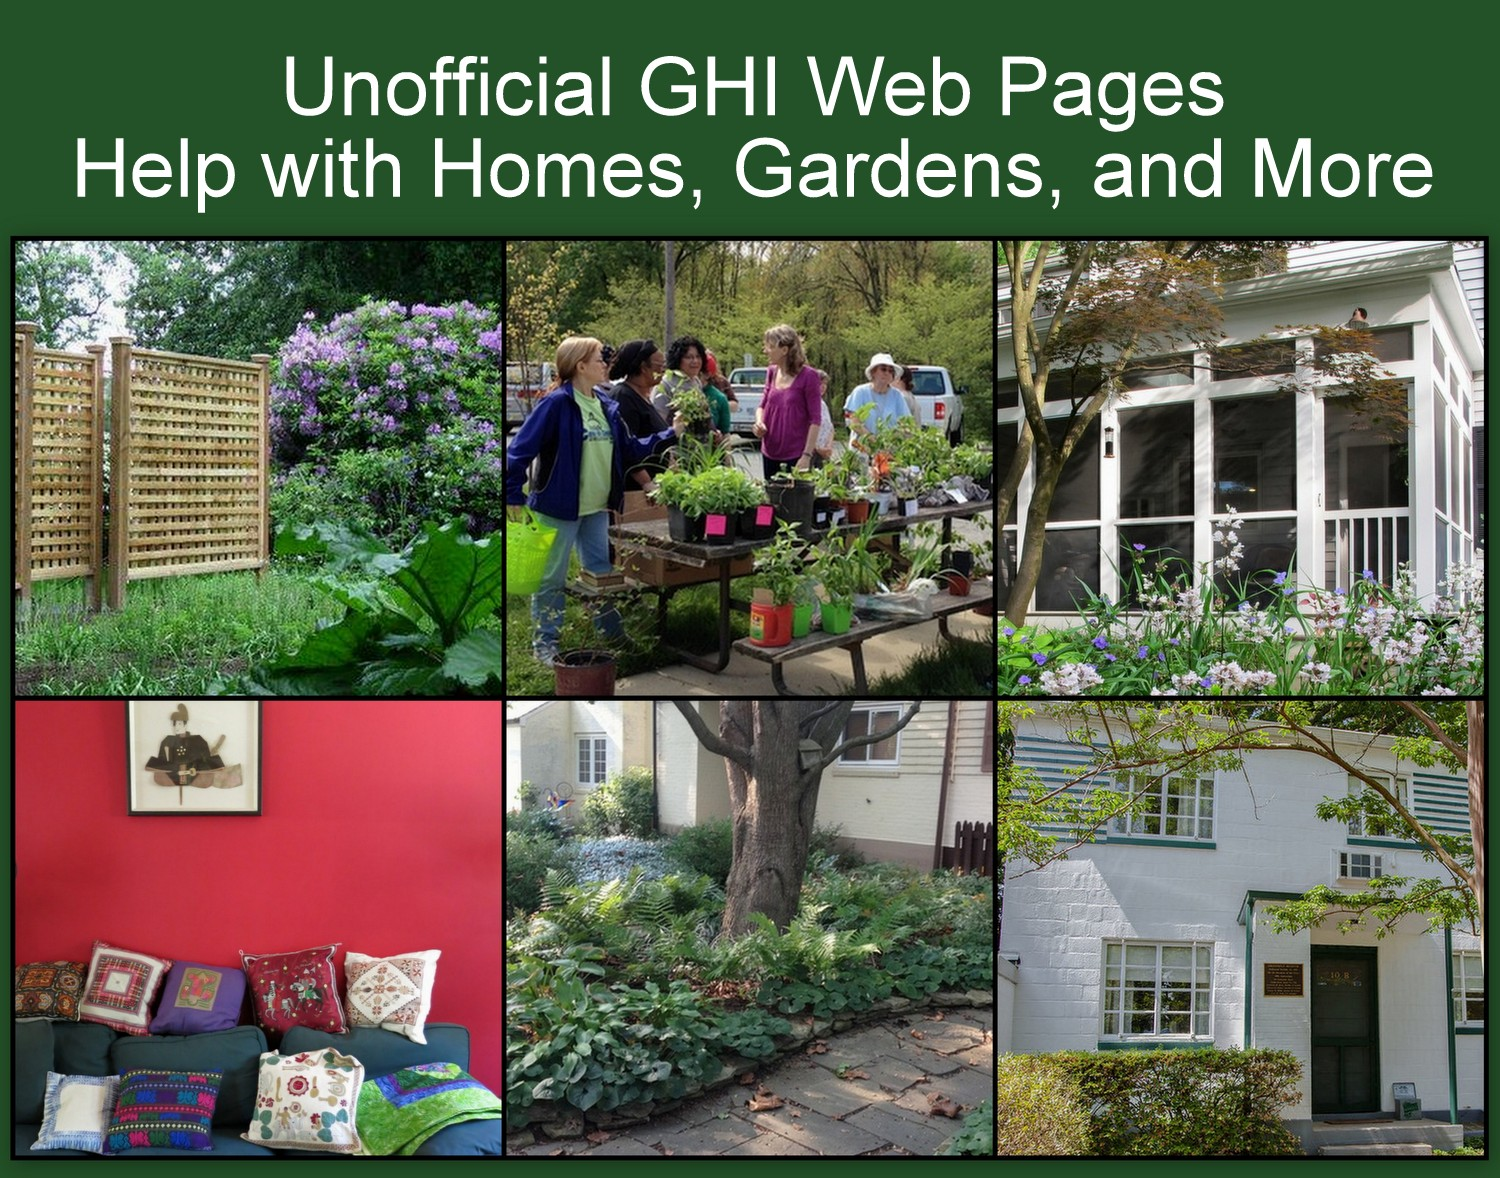 Homes, gardens and people of Greenbelt Homes Inc